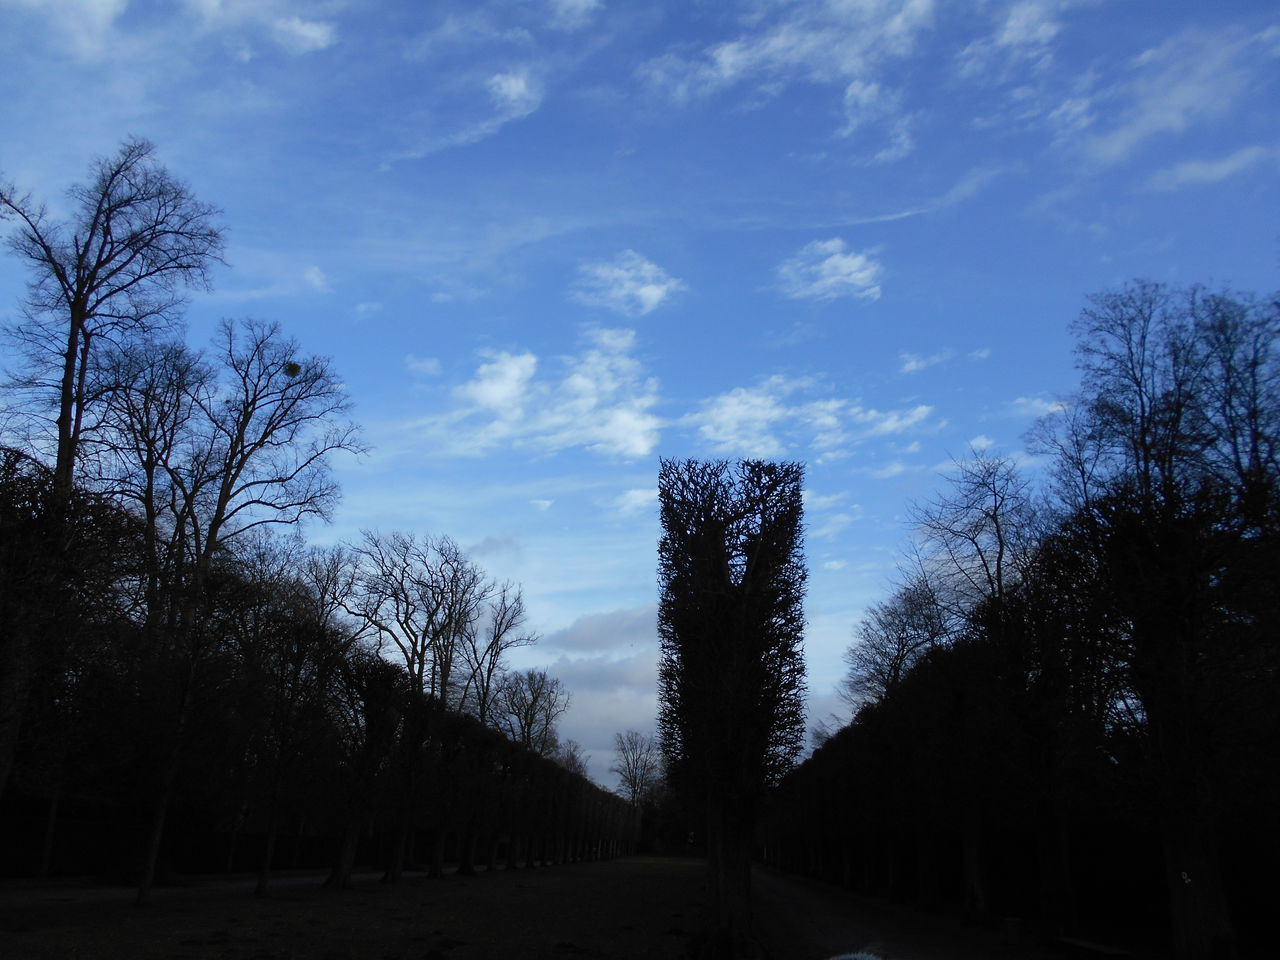 tree, sky, nature, tranquility, beauty in nature, cloud - sky, tranquil scene, blue, silhouette, scenics, bare tree, no people, outdoors, landscape, day, growth